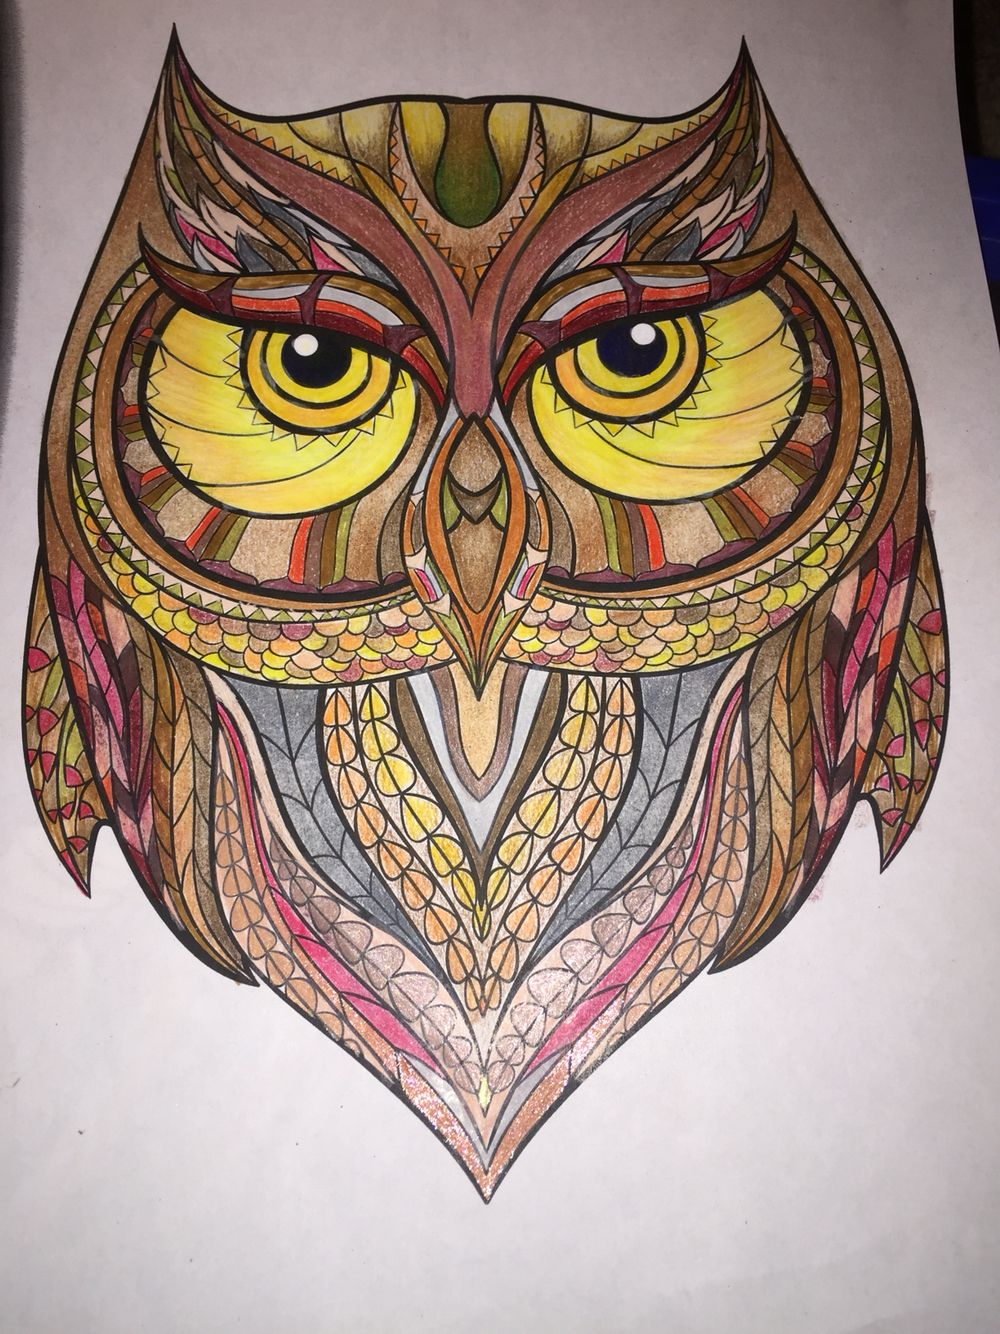 One wise owl